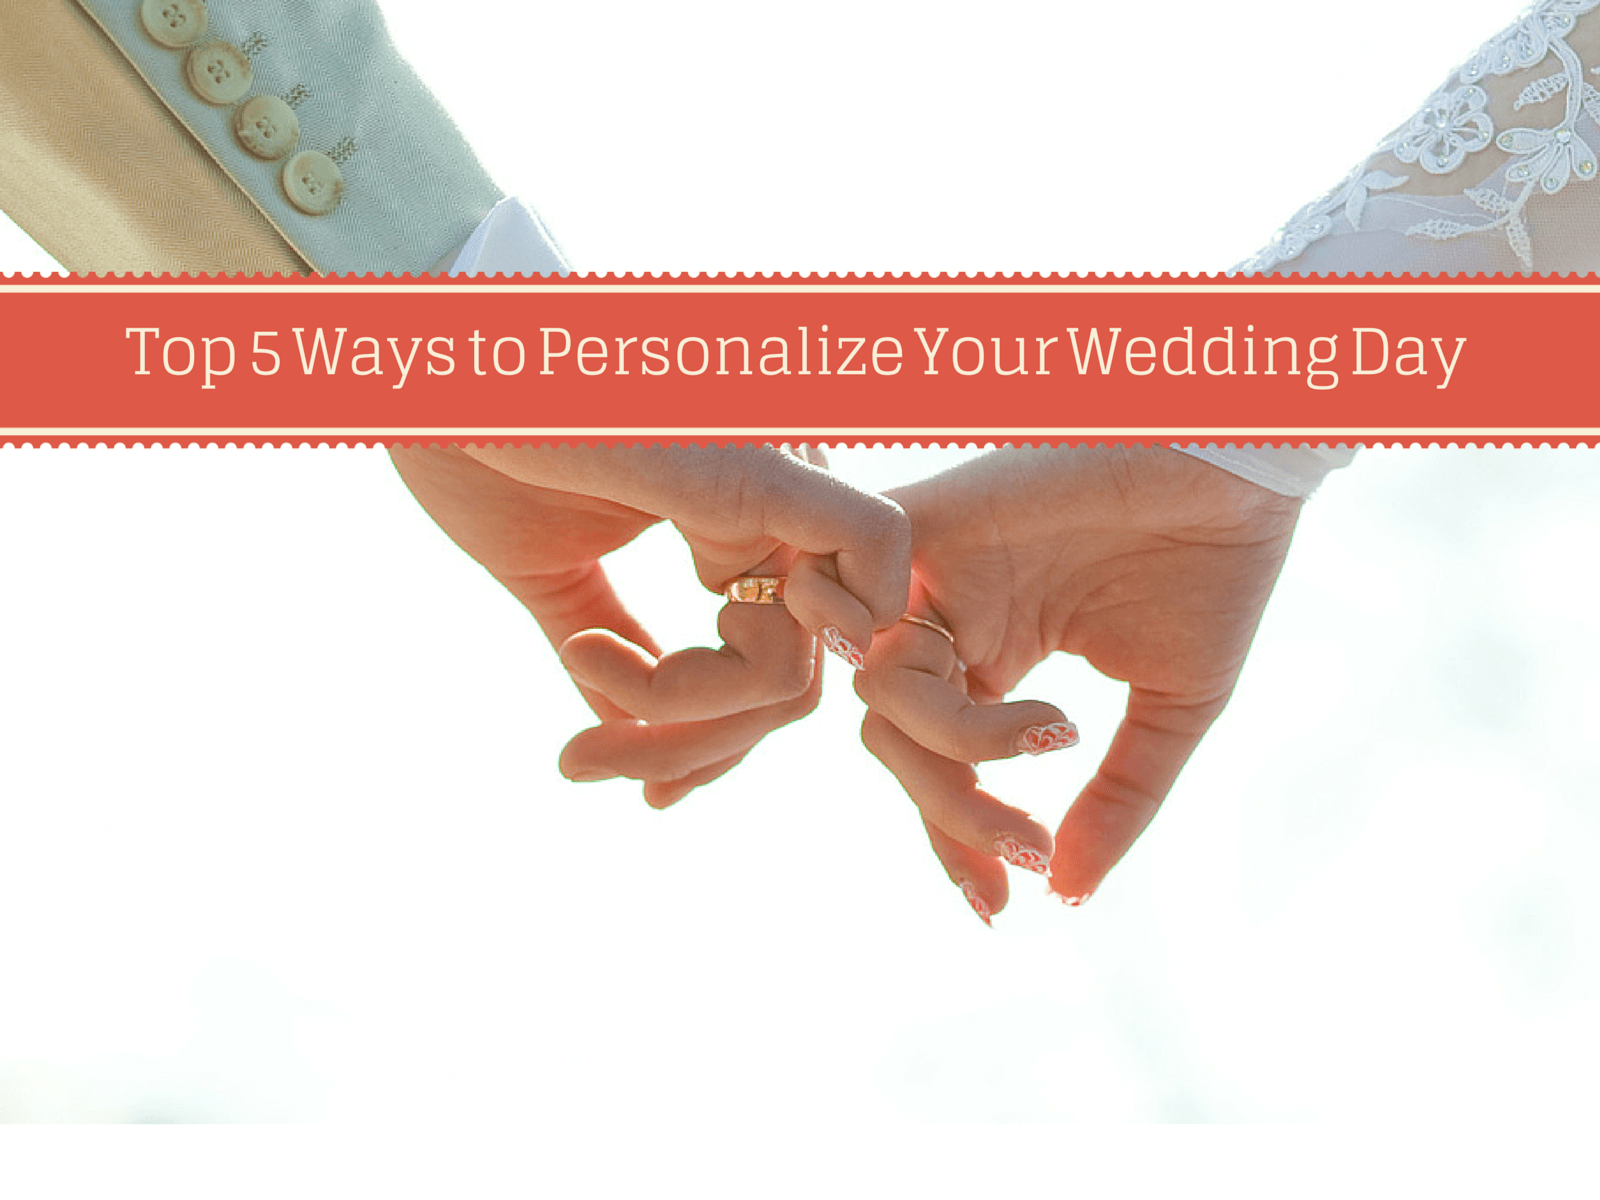 Wedding Gifts For Couples In Chennai : Top 12 Ways To Personalize Your Wedding Day - Augrav.com